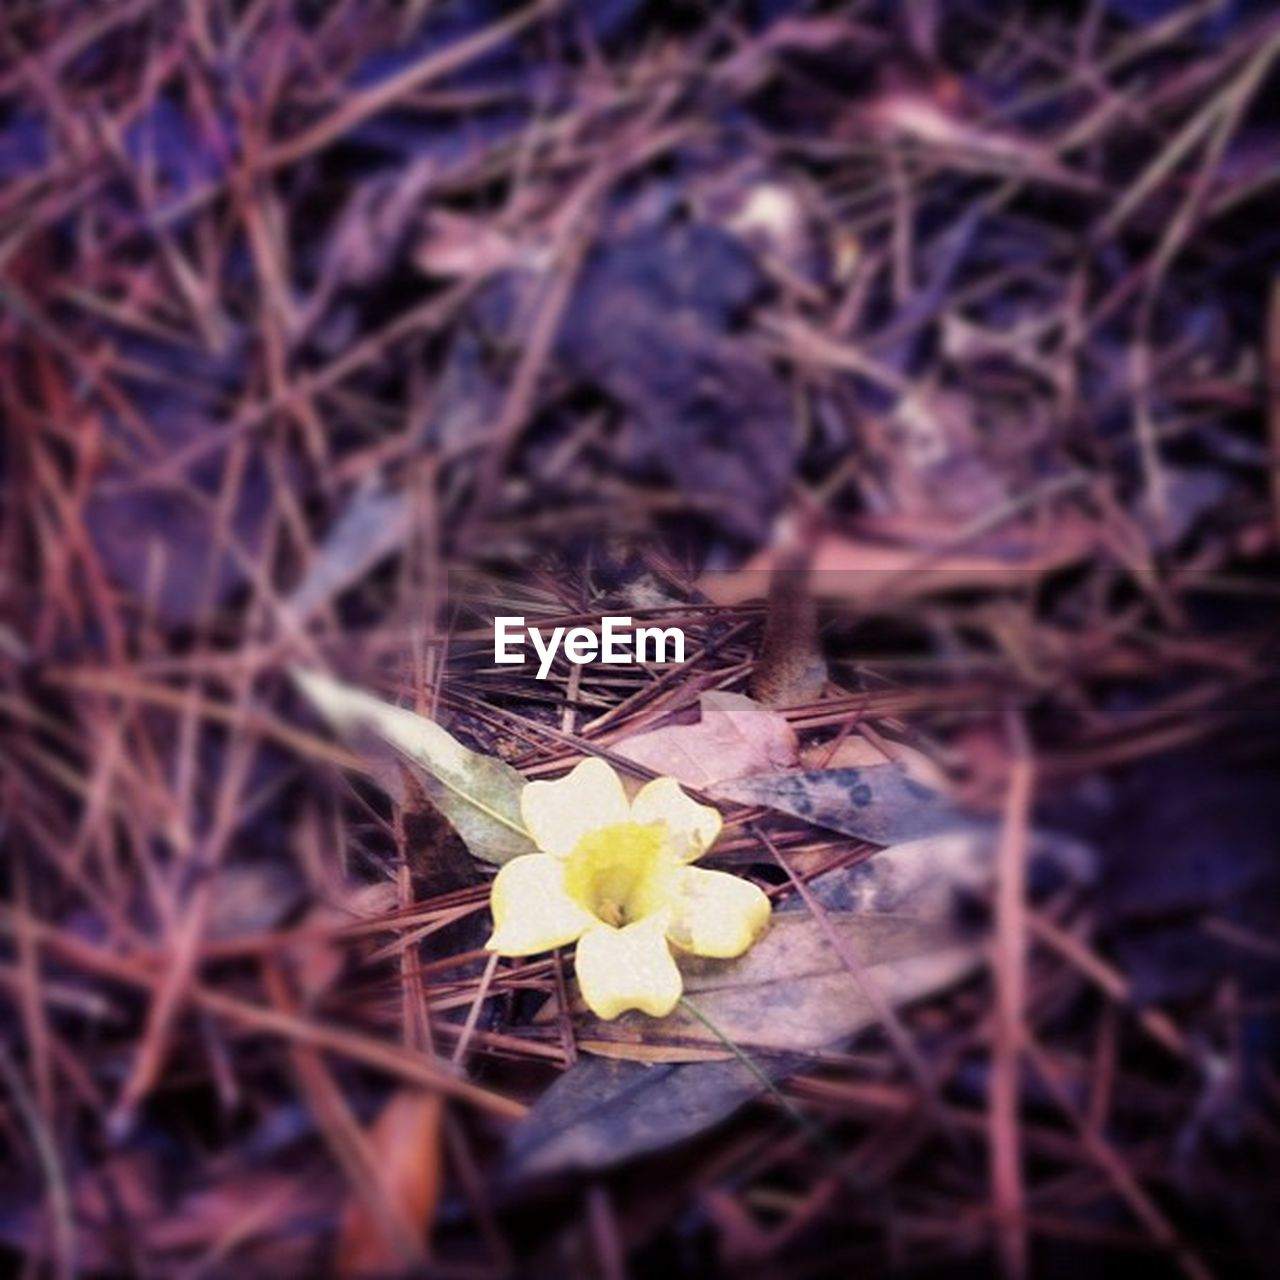 flower, fragility, nature, bird nest, no people, close-up, outdoors, day, growth, beauty in nature, flower head